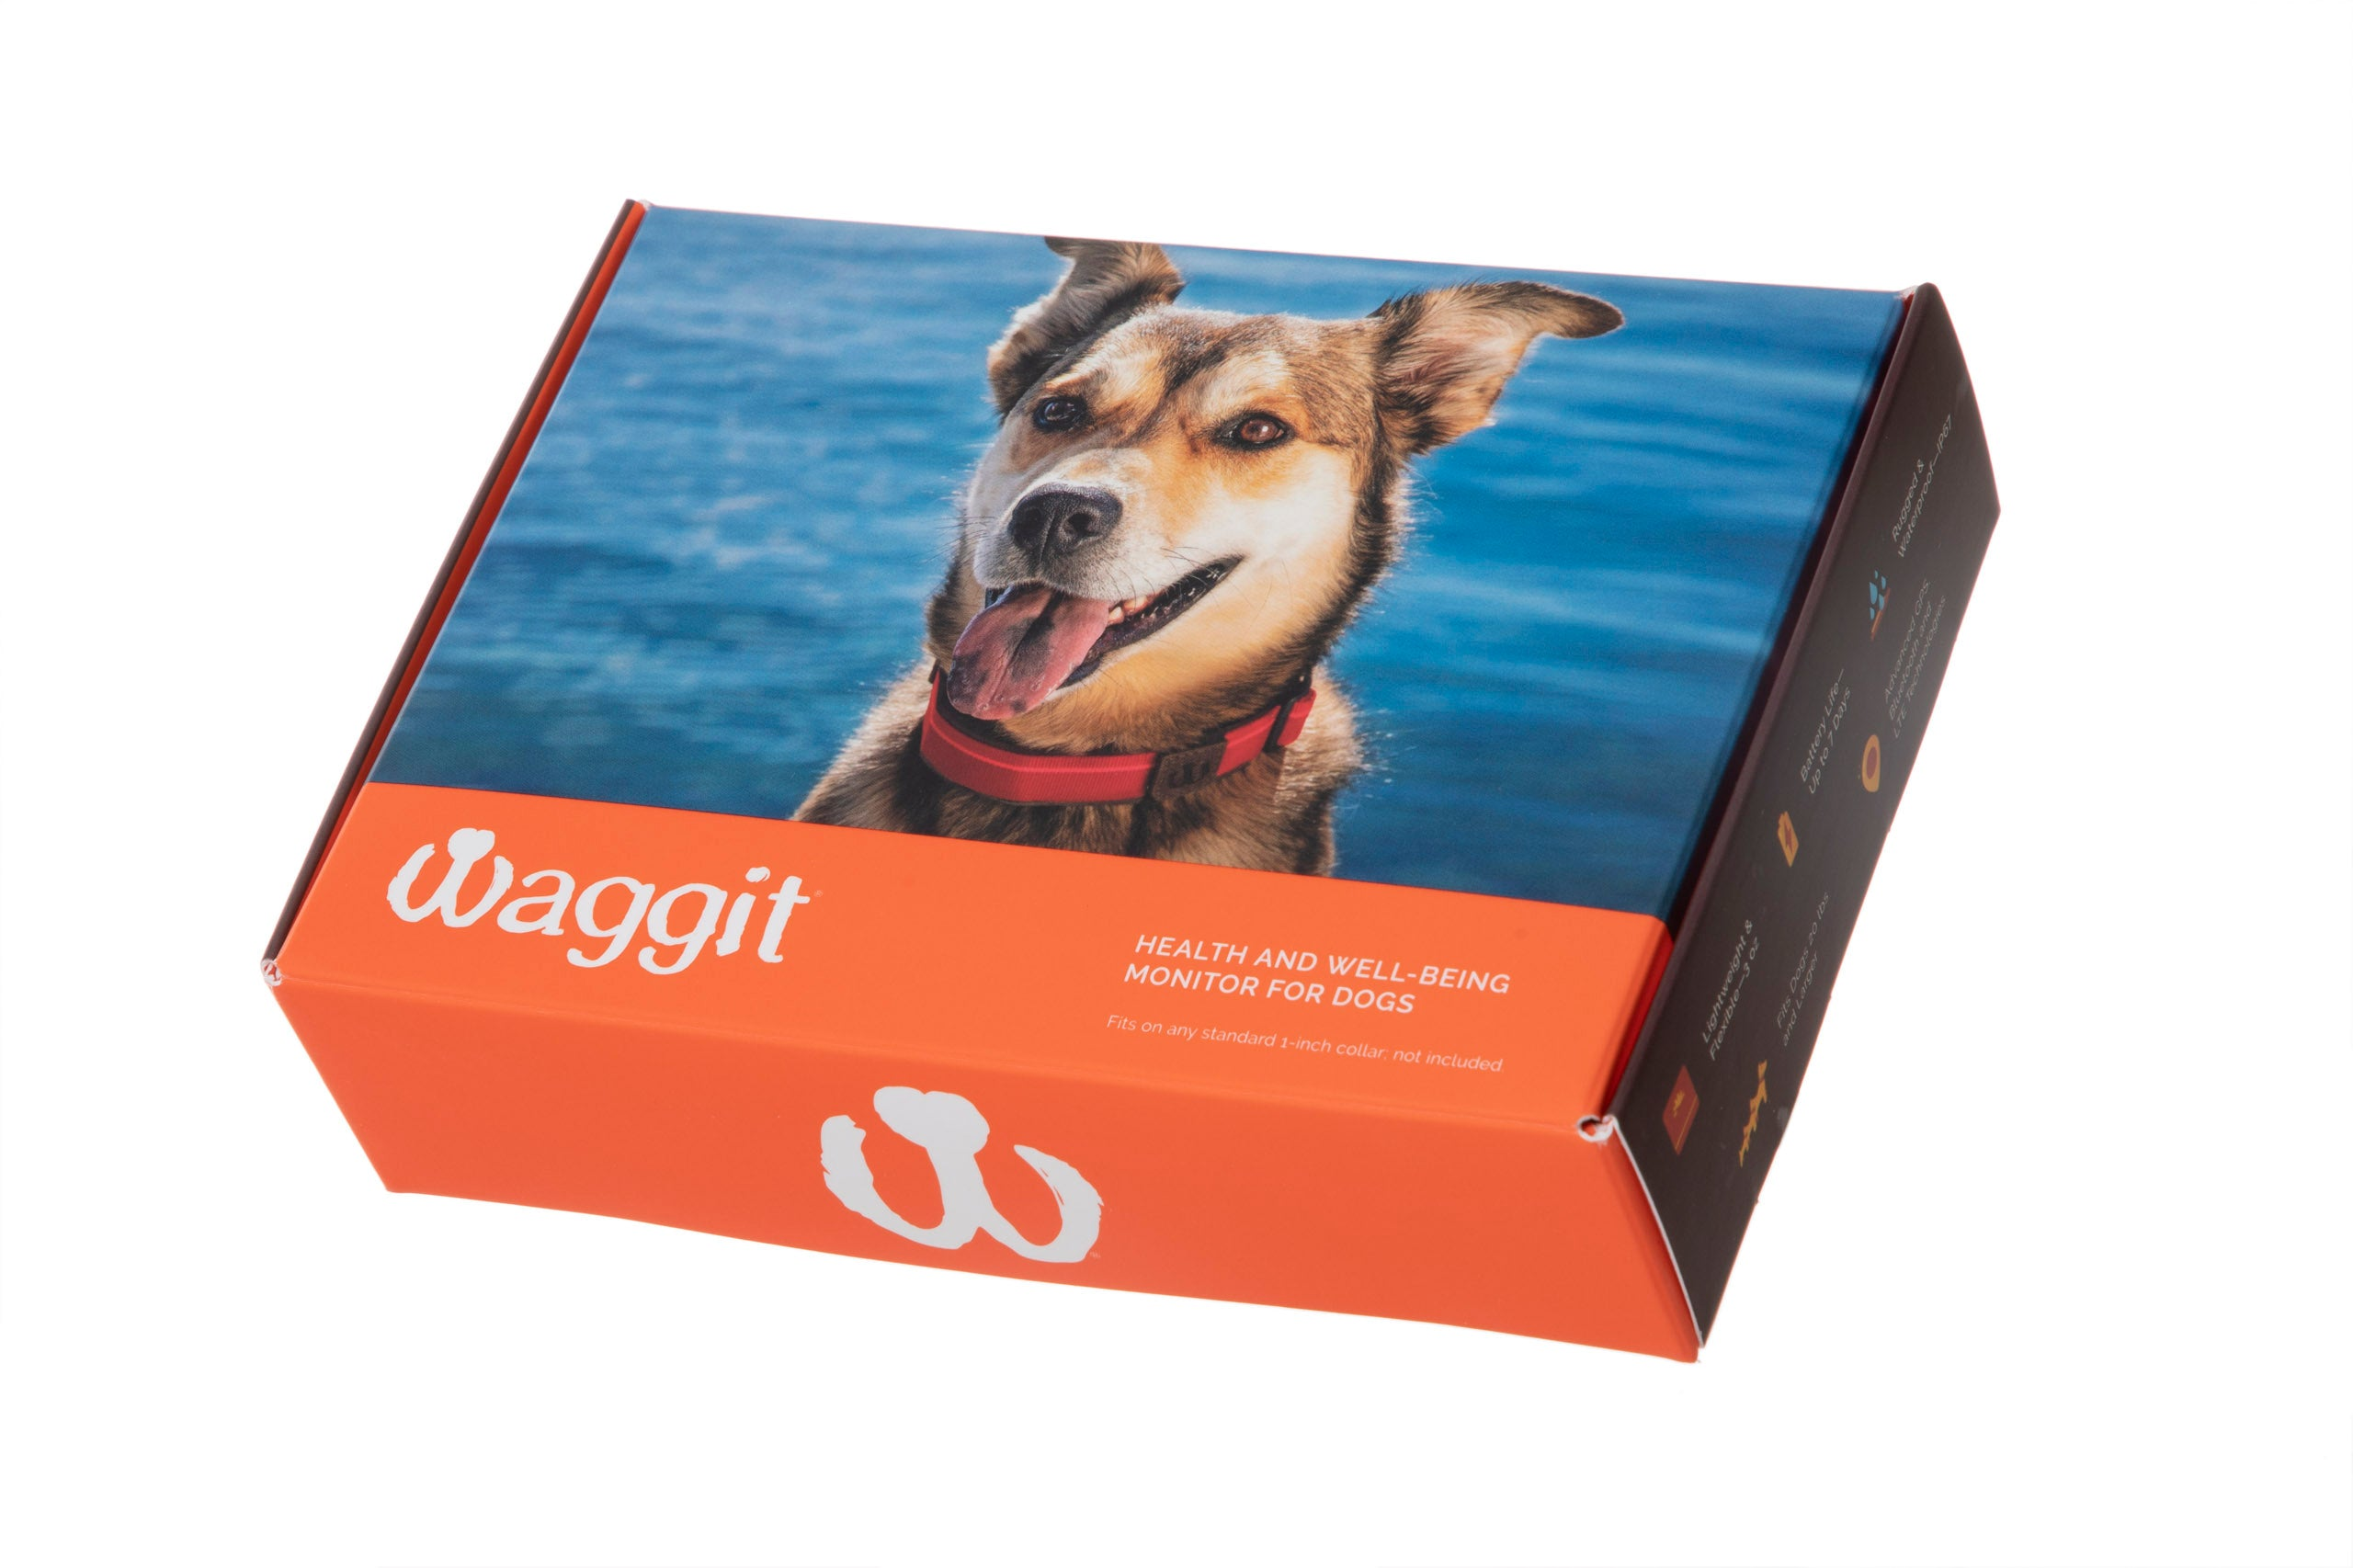 Waggit Smart Health and GPS Tracker - 2 Dogs